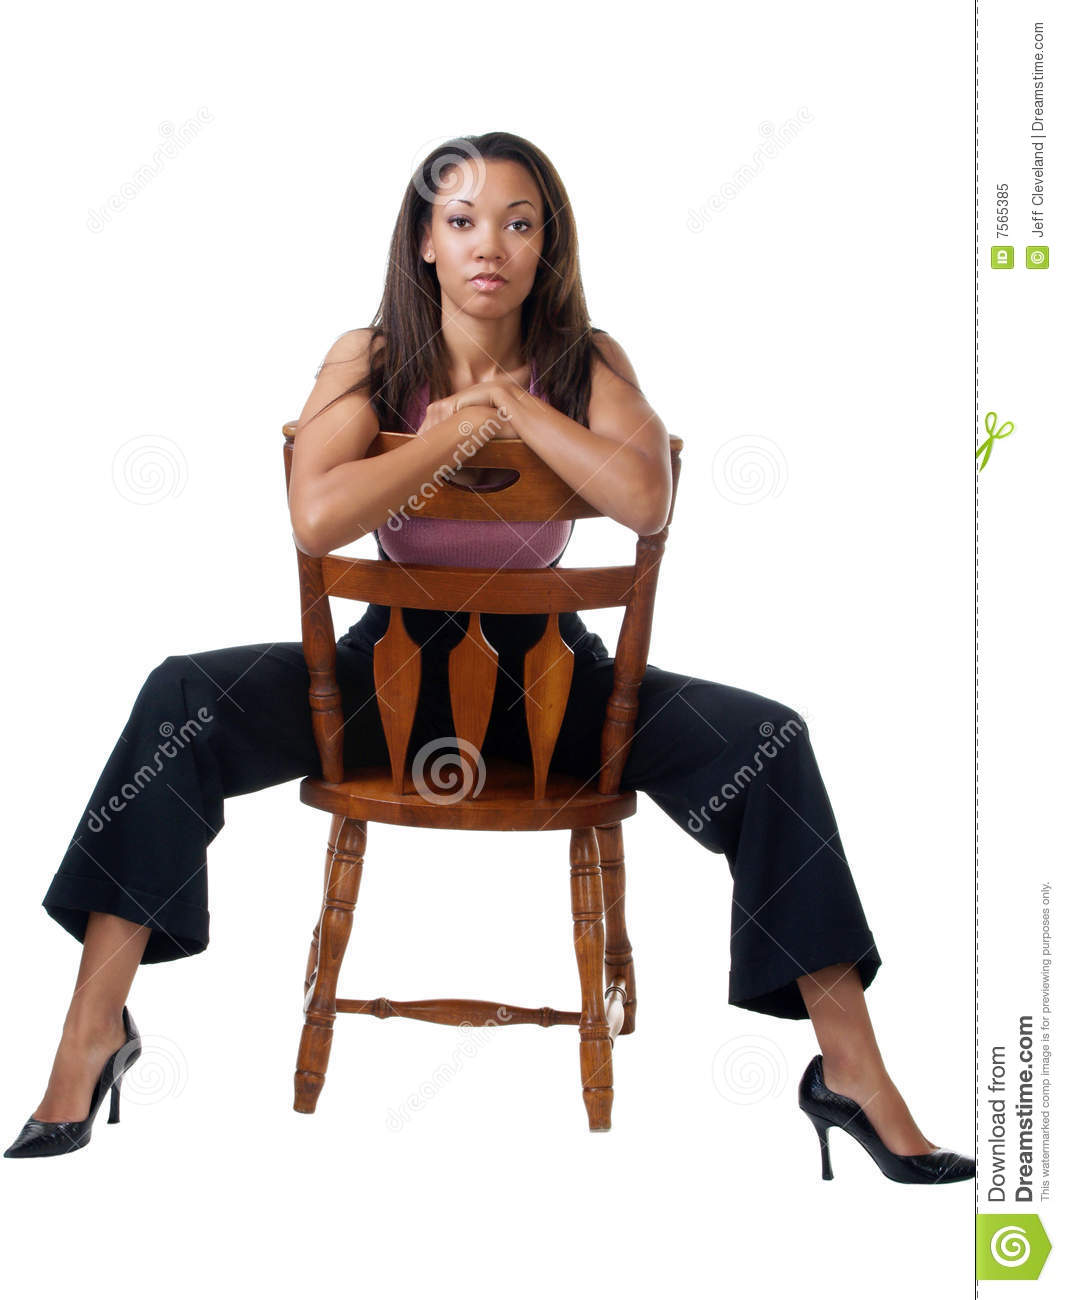 Young black woman staddling chair in pants outfit  sc 1 st  Dreamstime.com & Young Black Woman Staddling Chair In Pants Outfit Stock Image ...